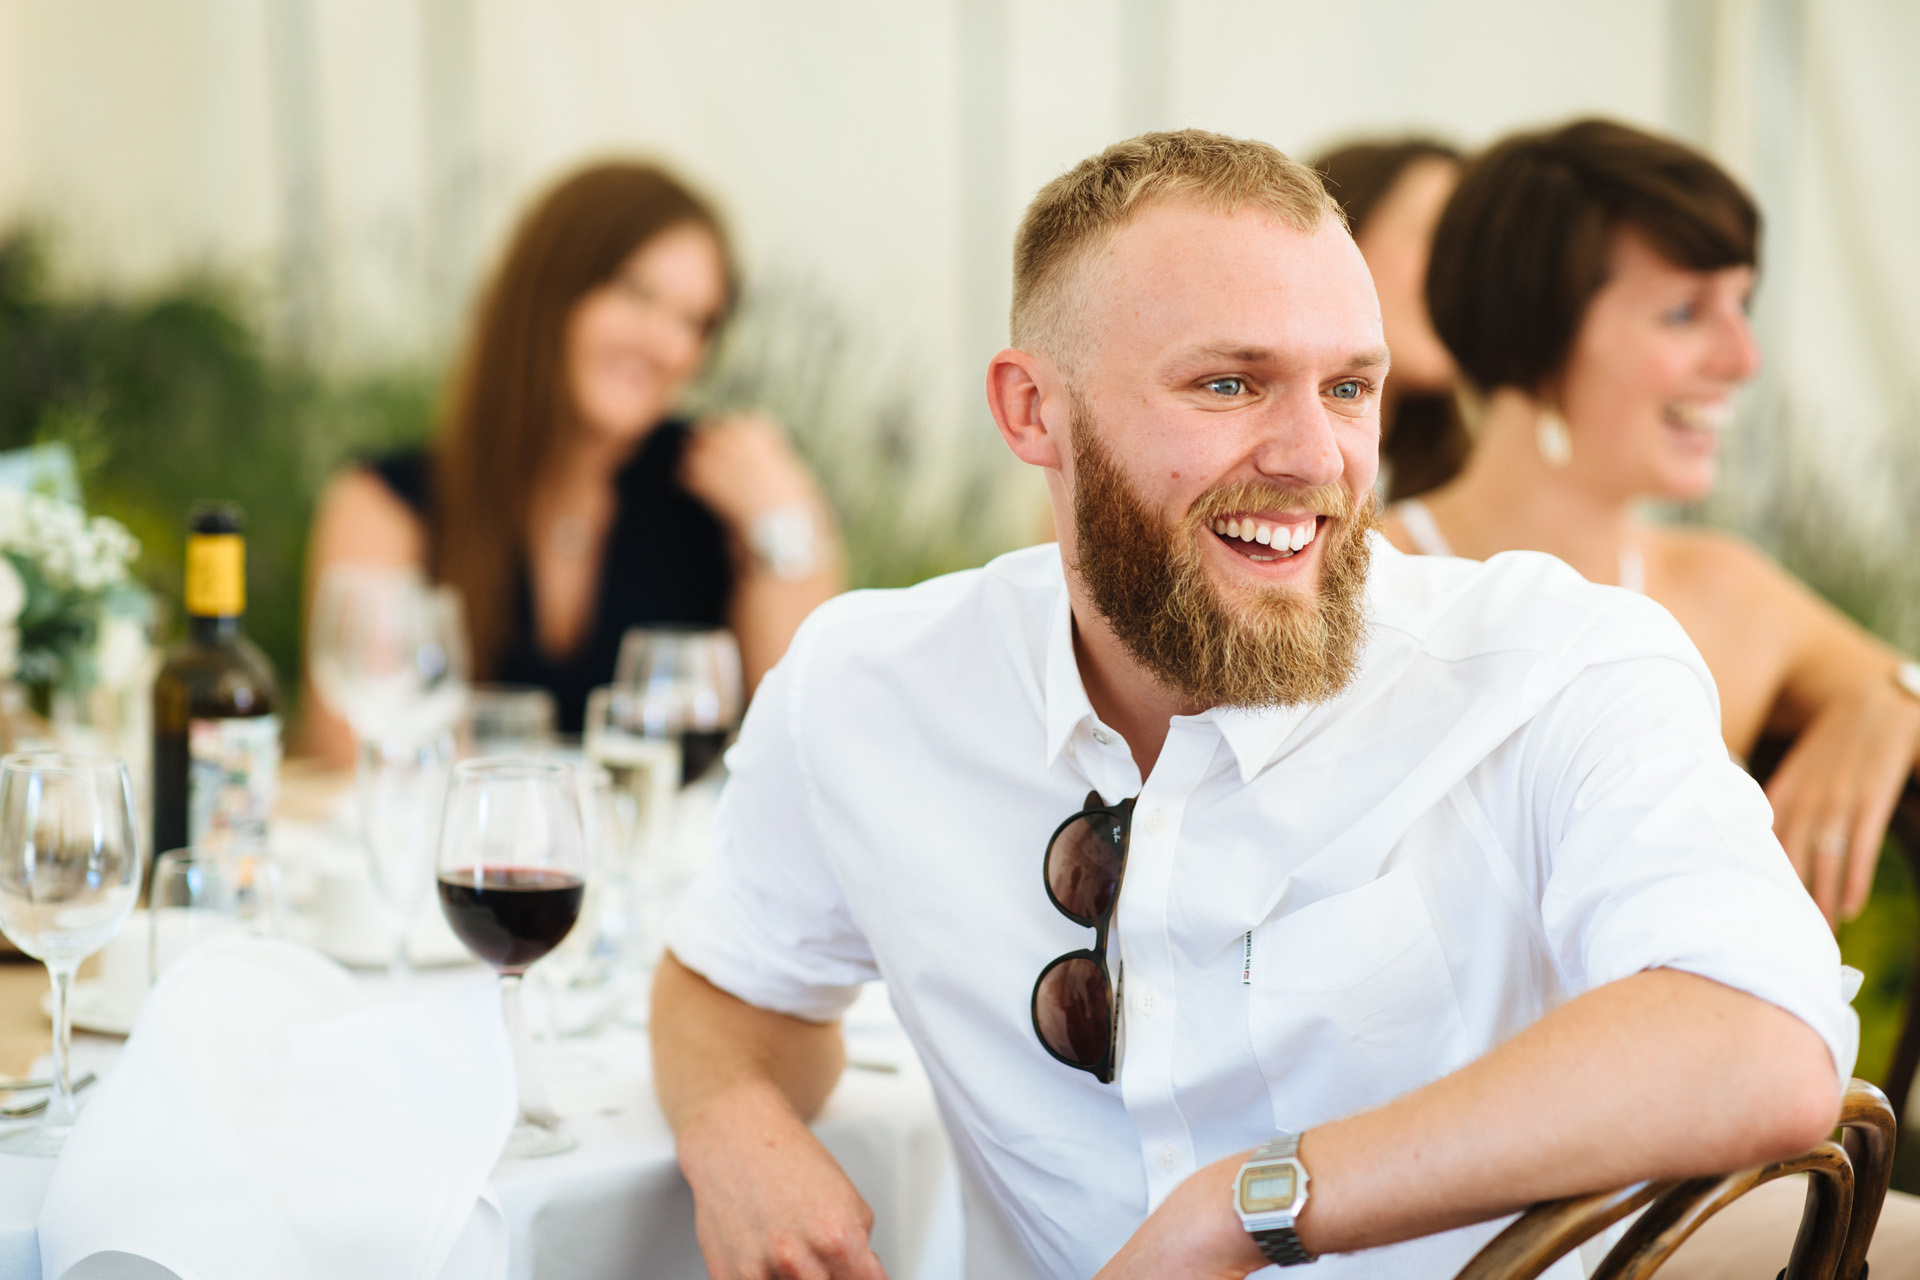 wedding guest with beard and sunglasses laughing at speeches